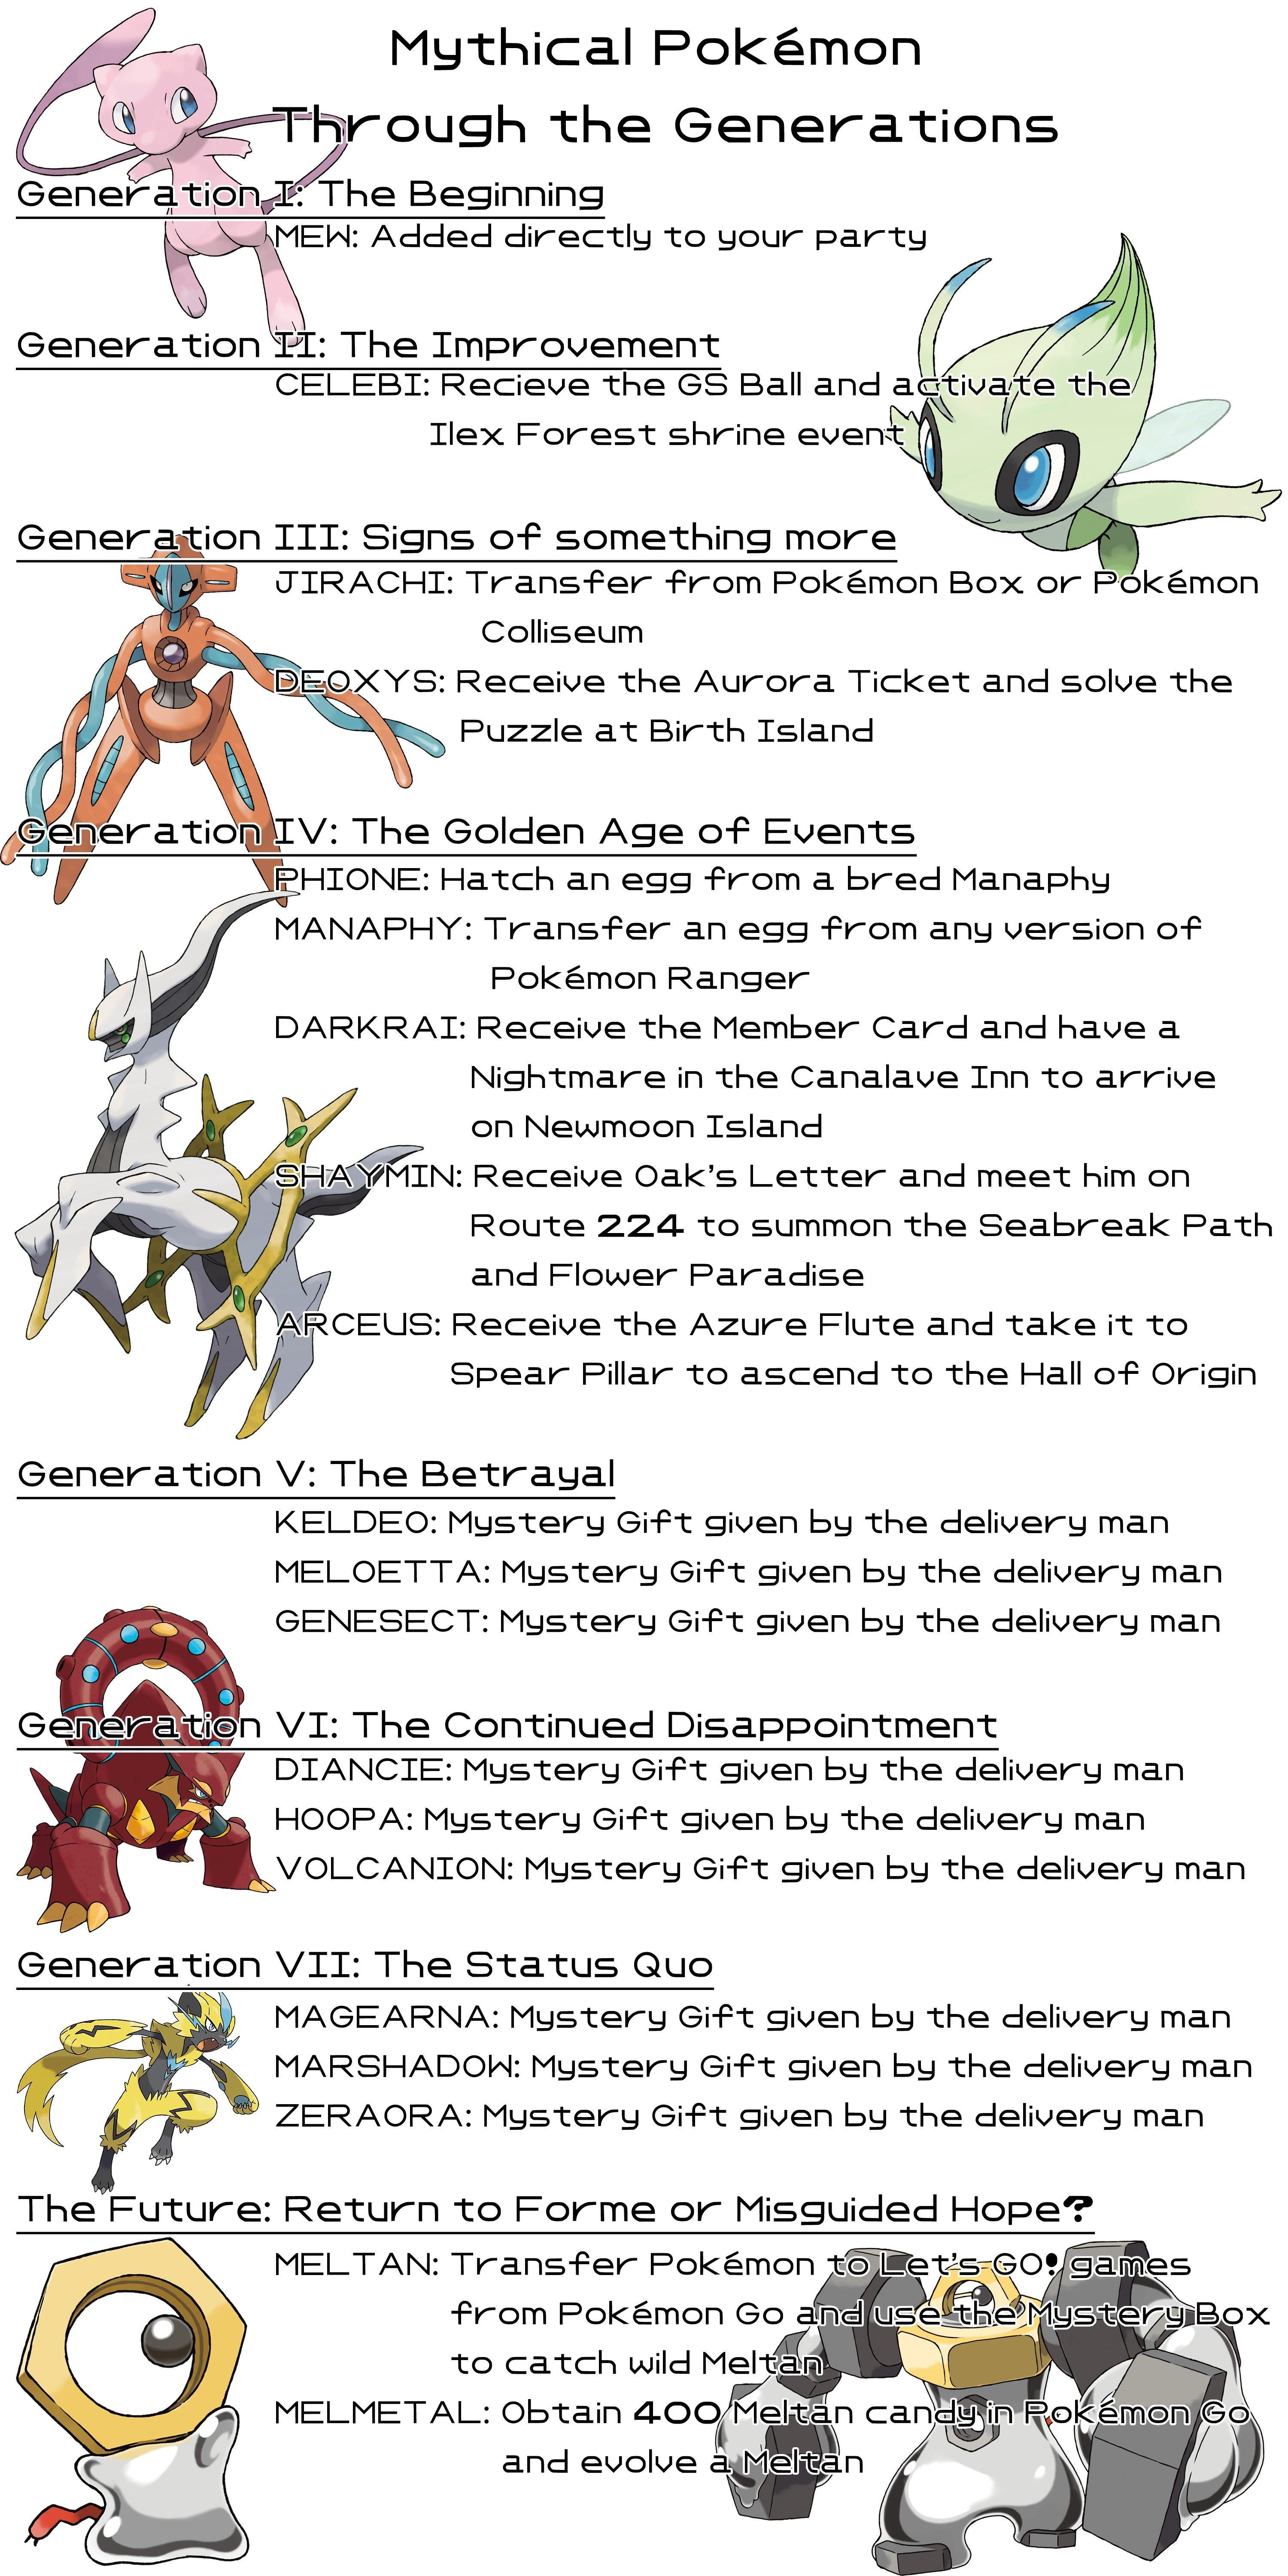 An infographic displaying the intended in-game methods for